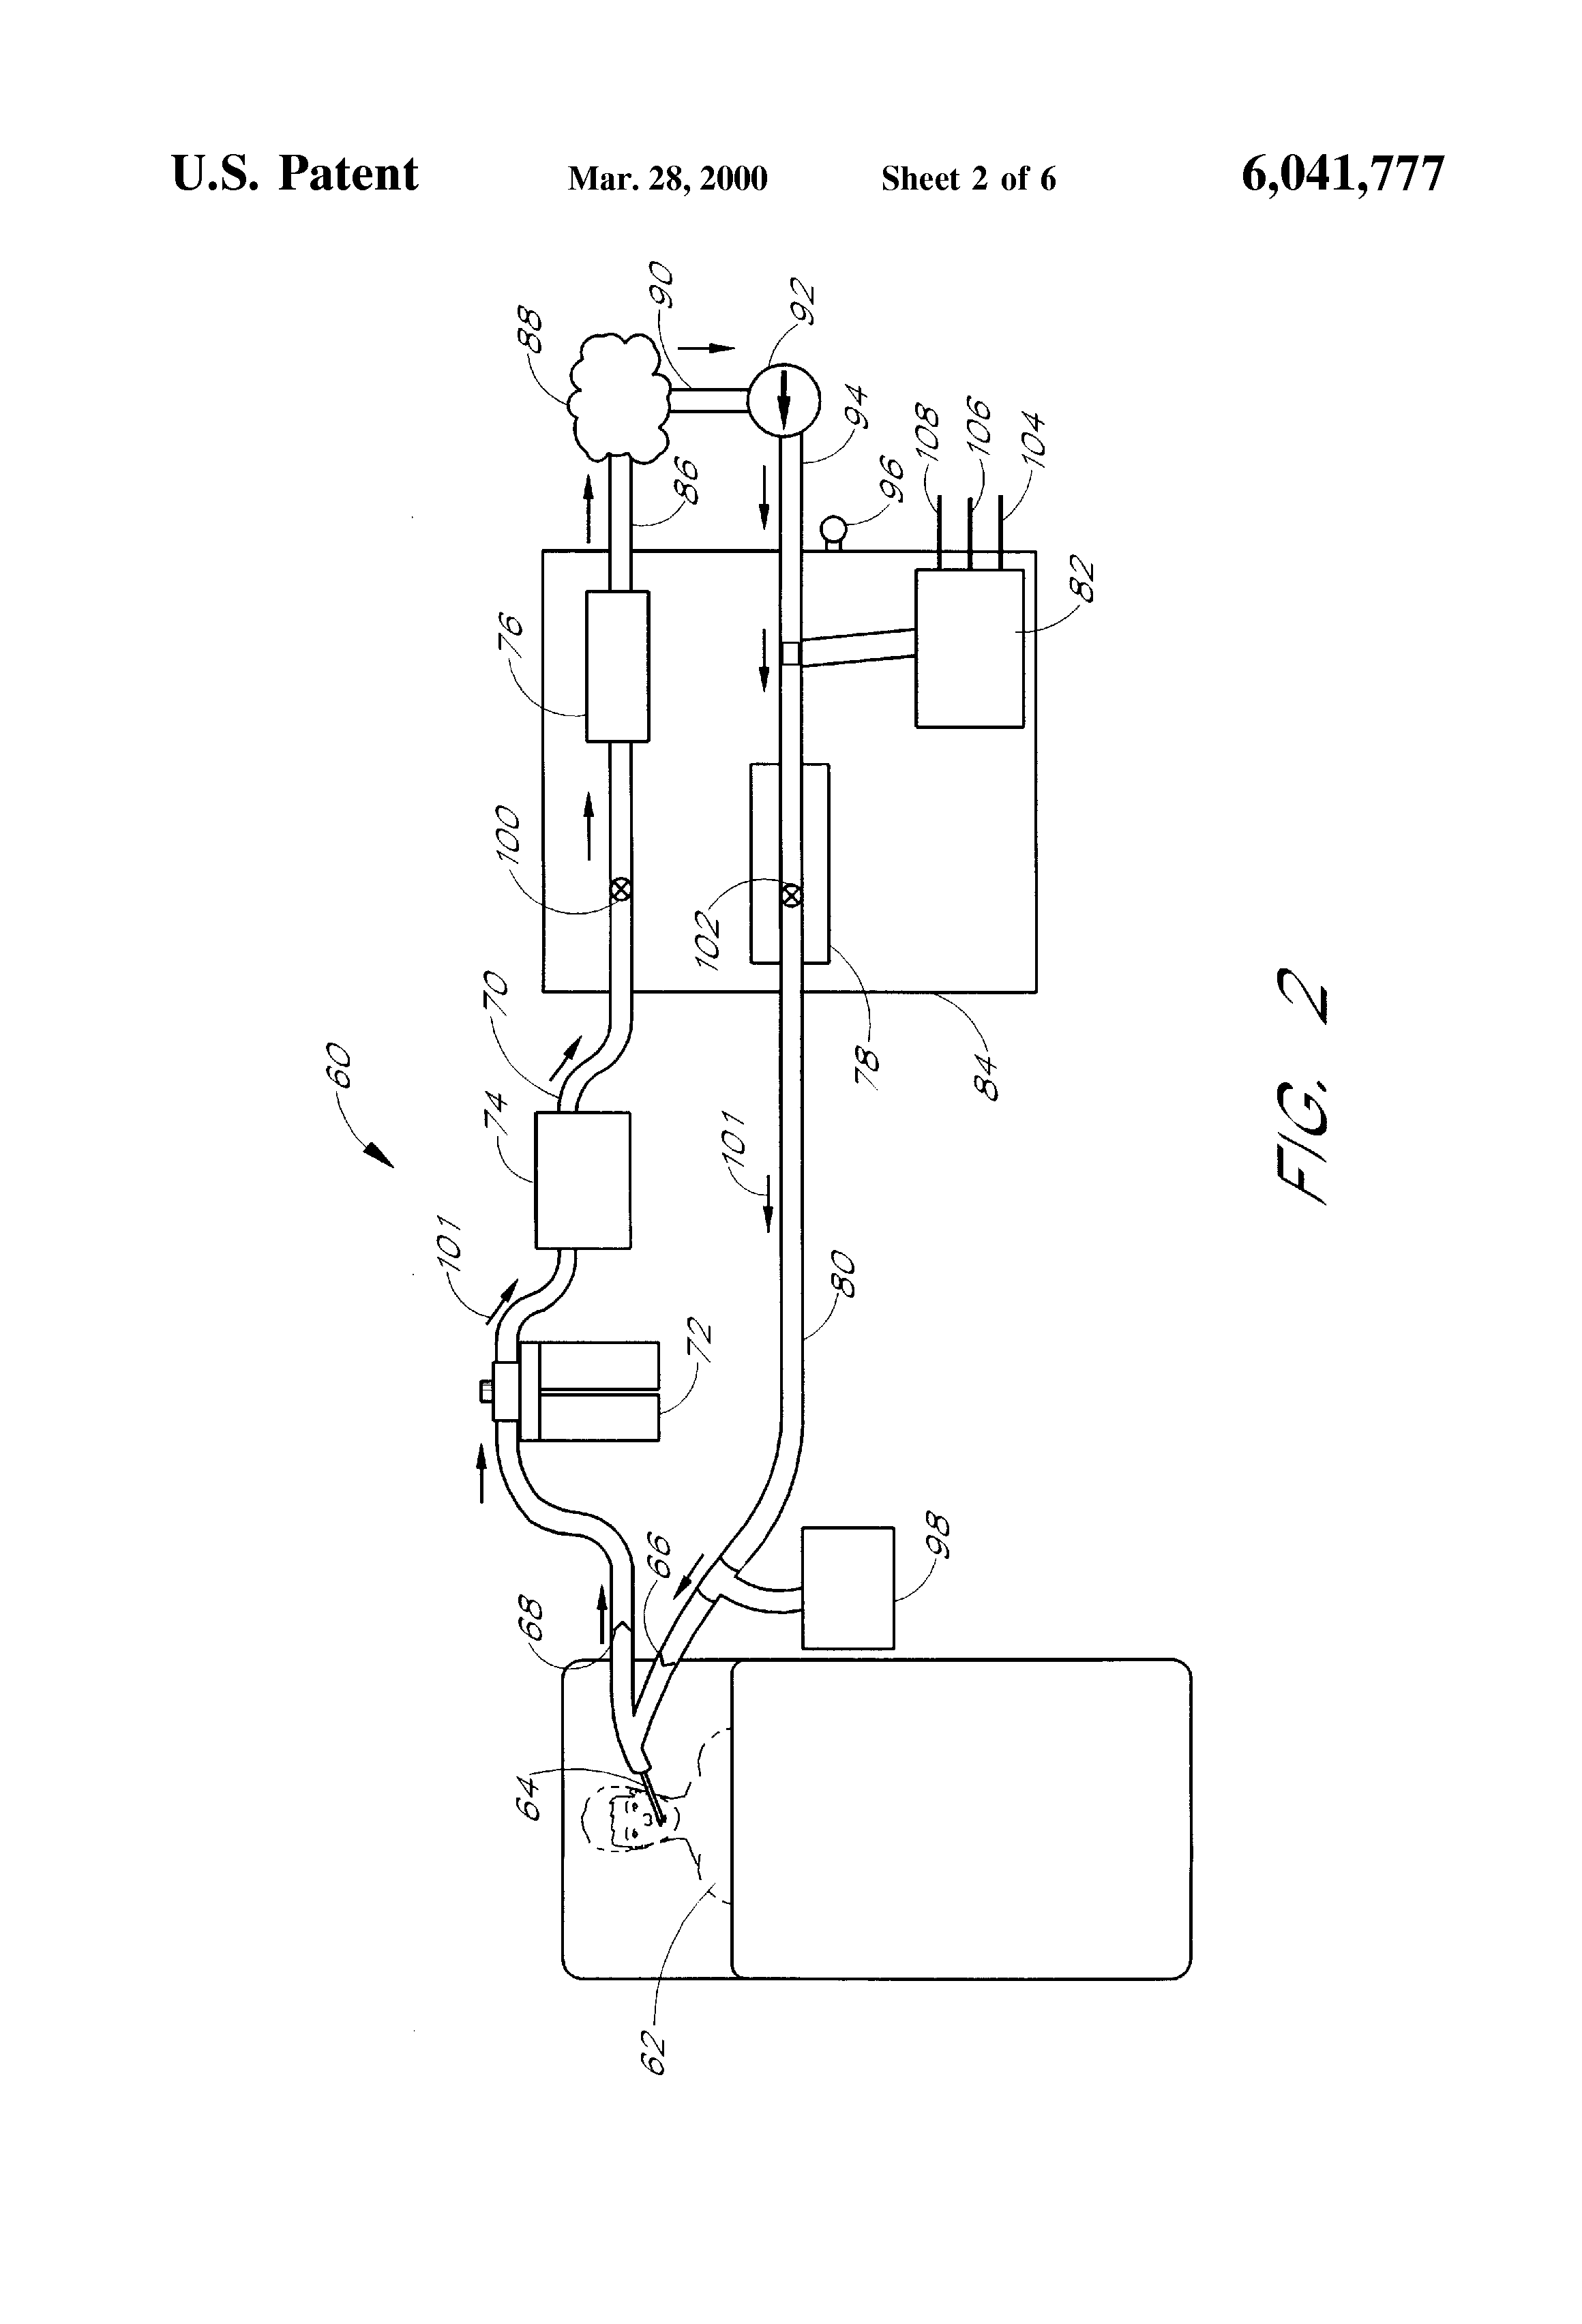 patent us6041777 - methods and apparatus for closed-circuit ventilation therapy